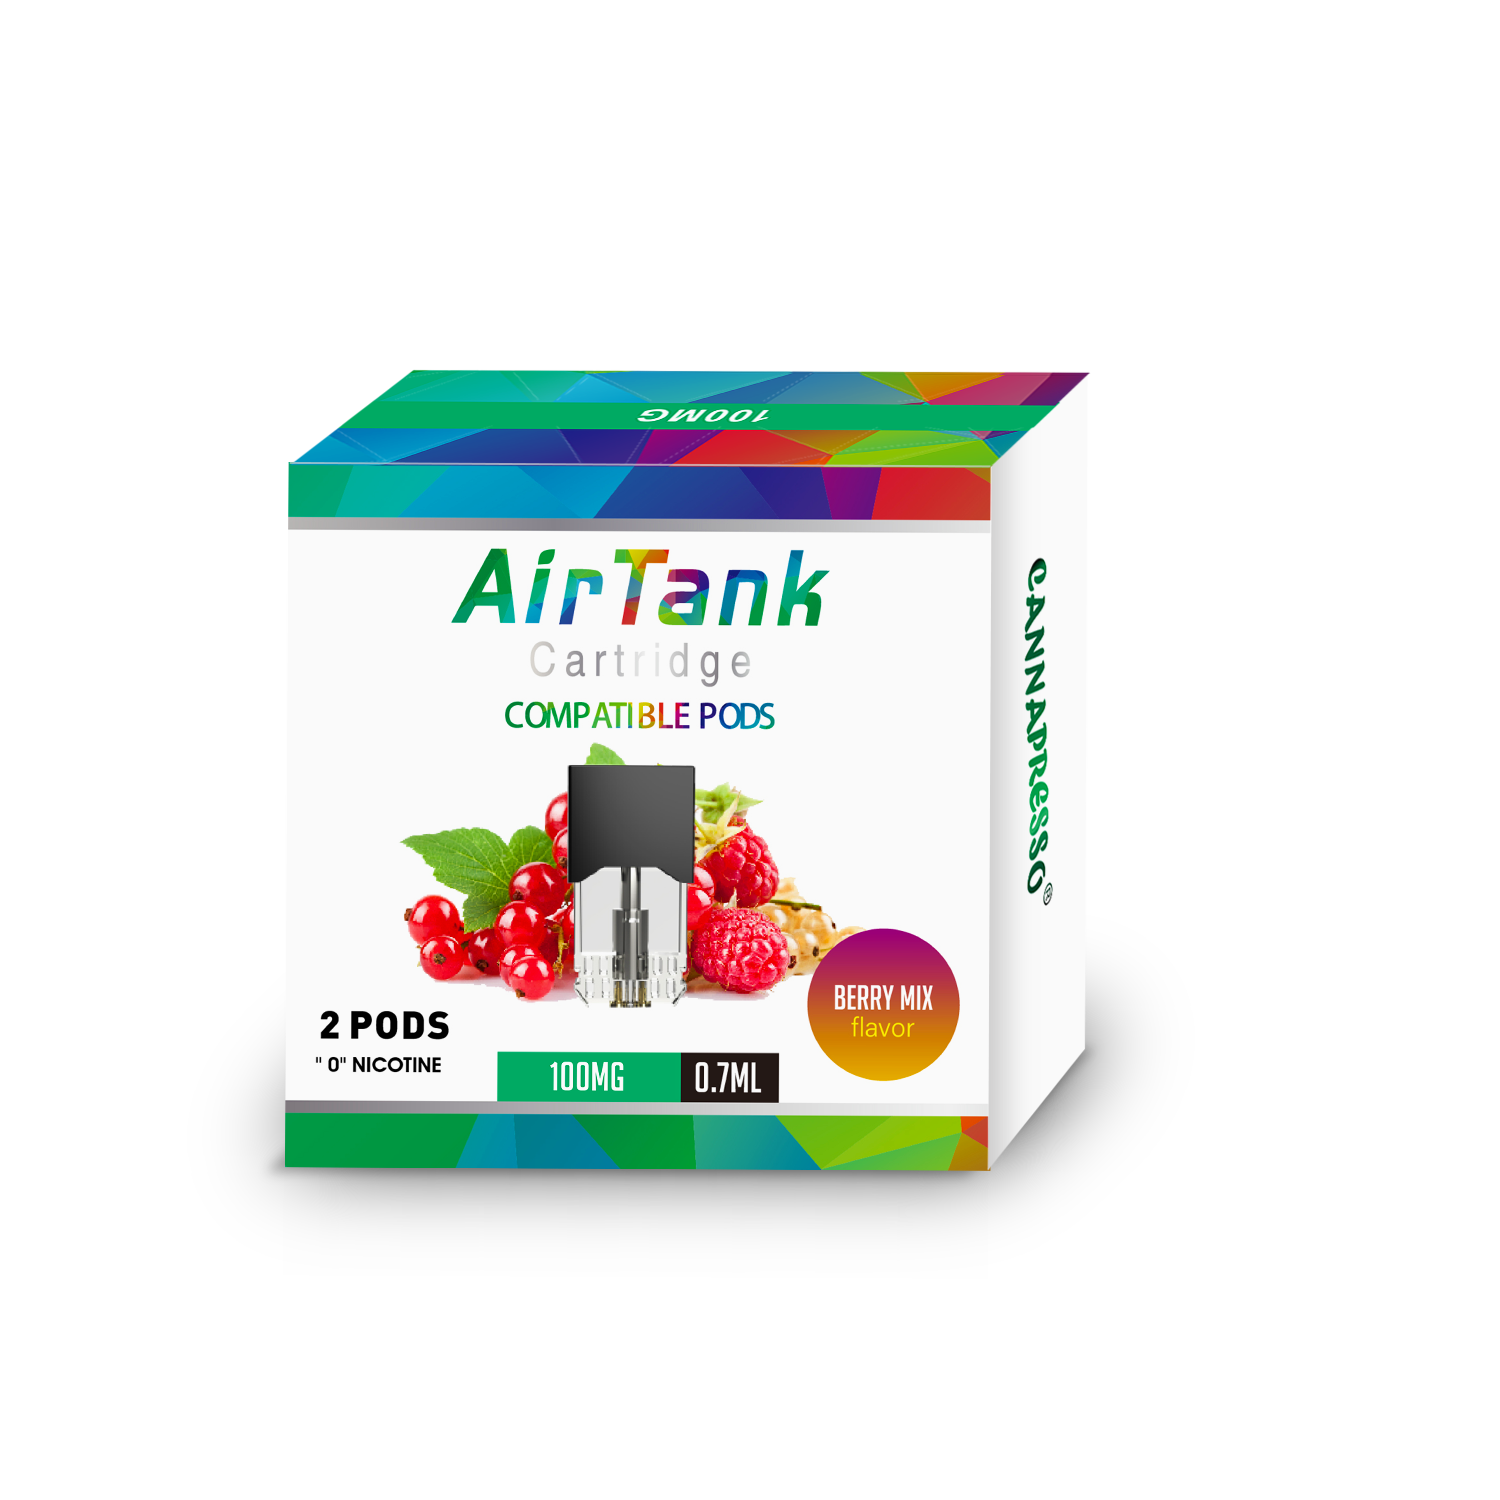 Cannapresso Air Tank CBD pods Featured Image